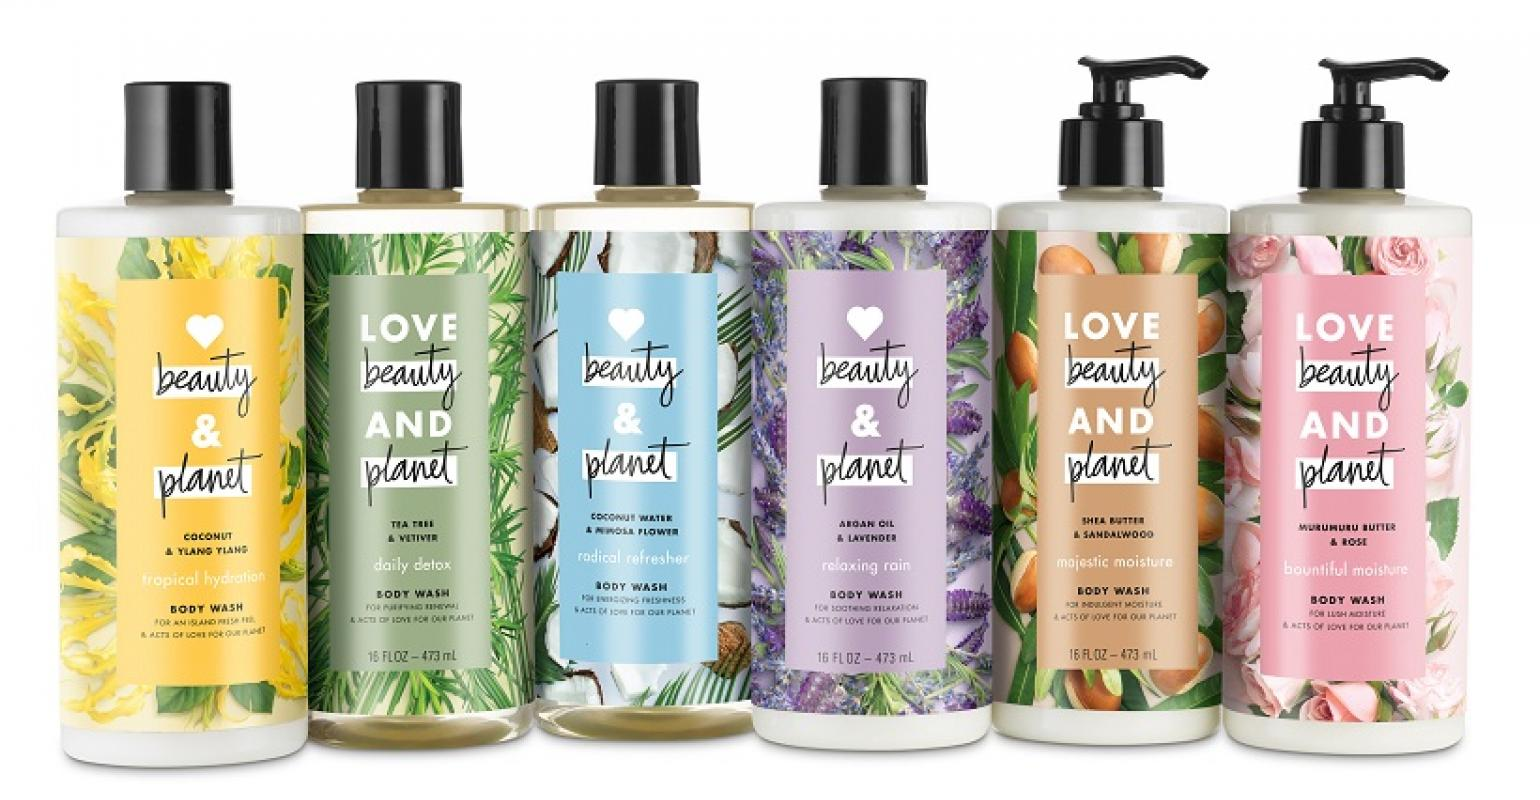 New personal care brand, packaging fit Unilever's sustainable living |  plasticstoday.com